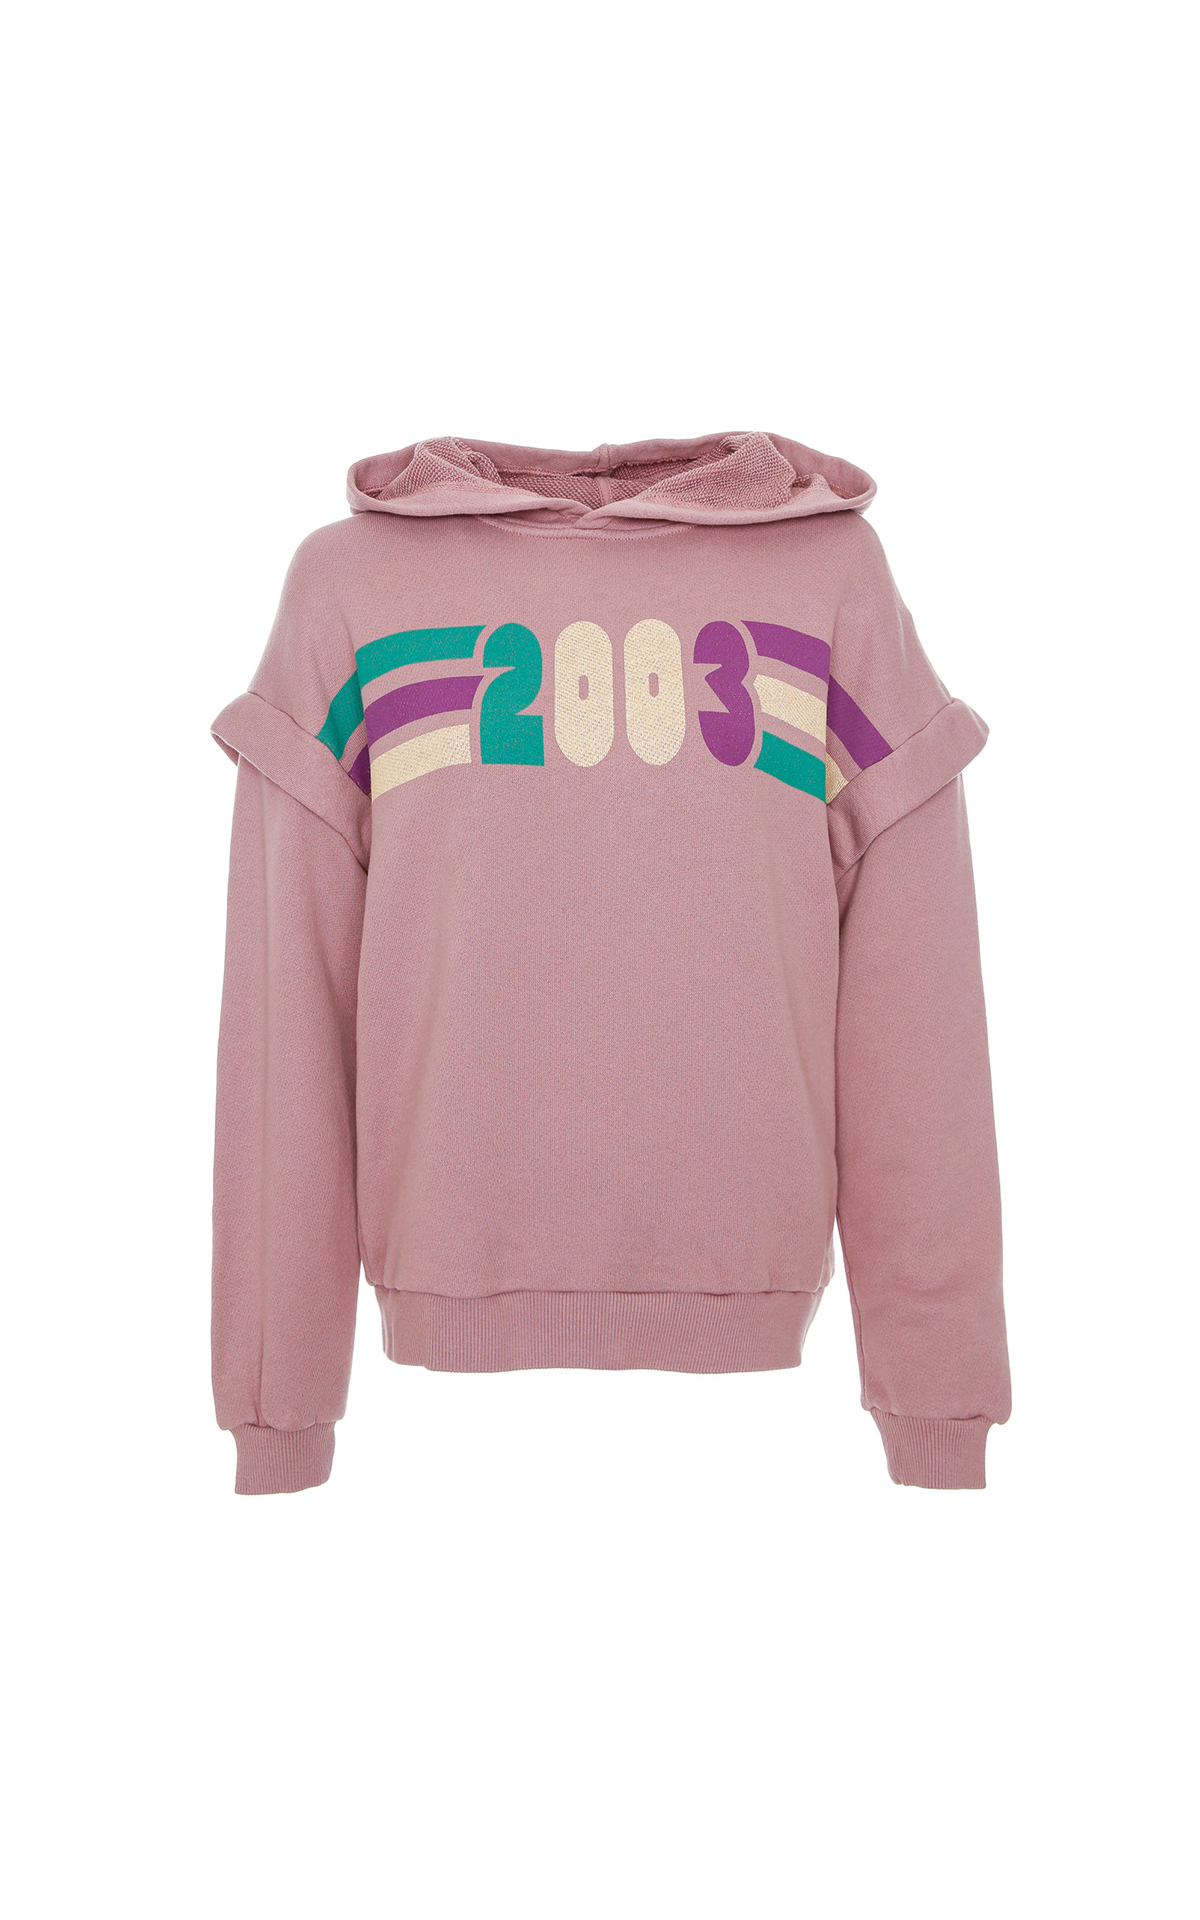 Lilac Blow sweatshirt ba&sh